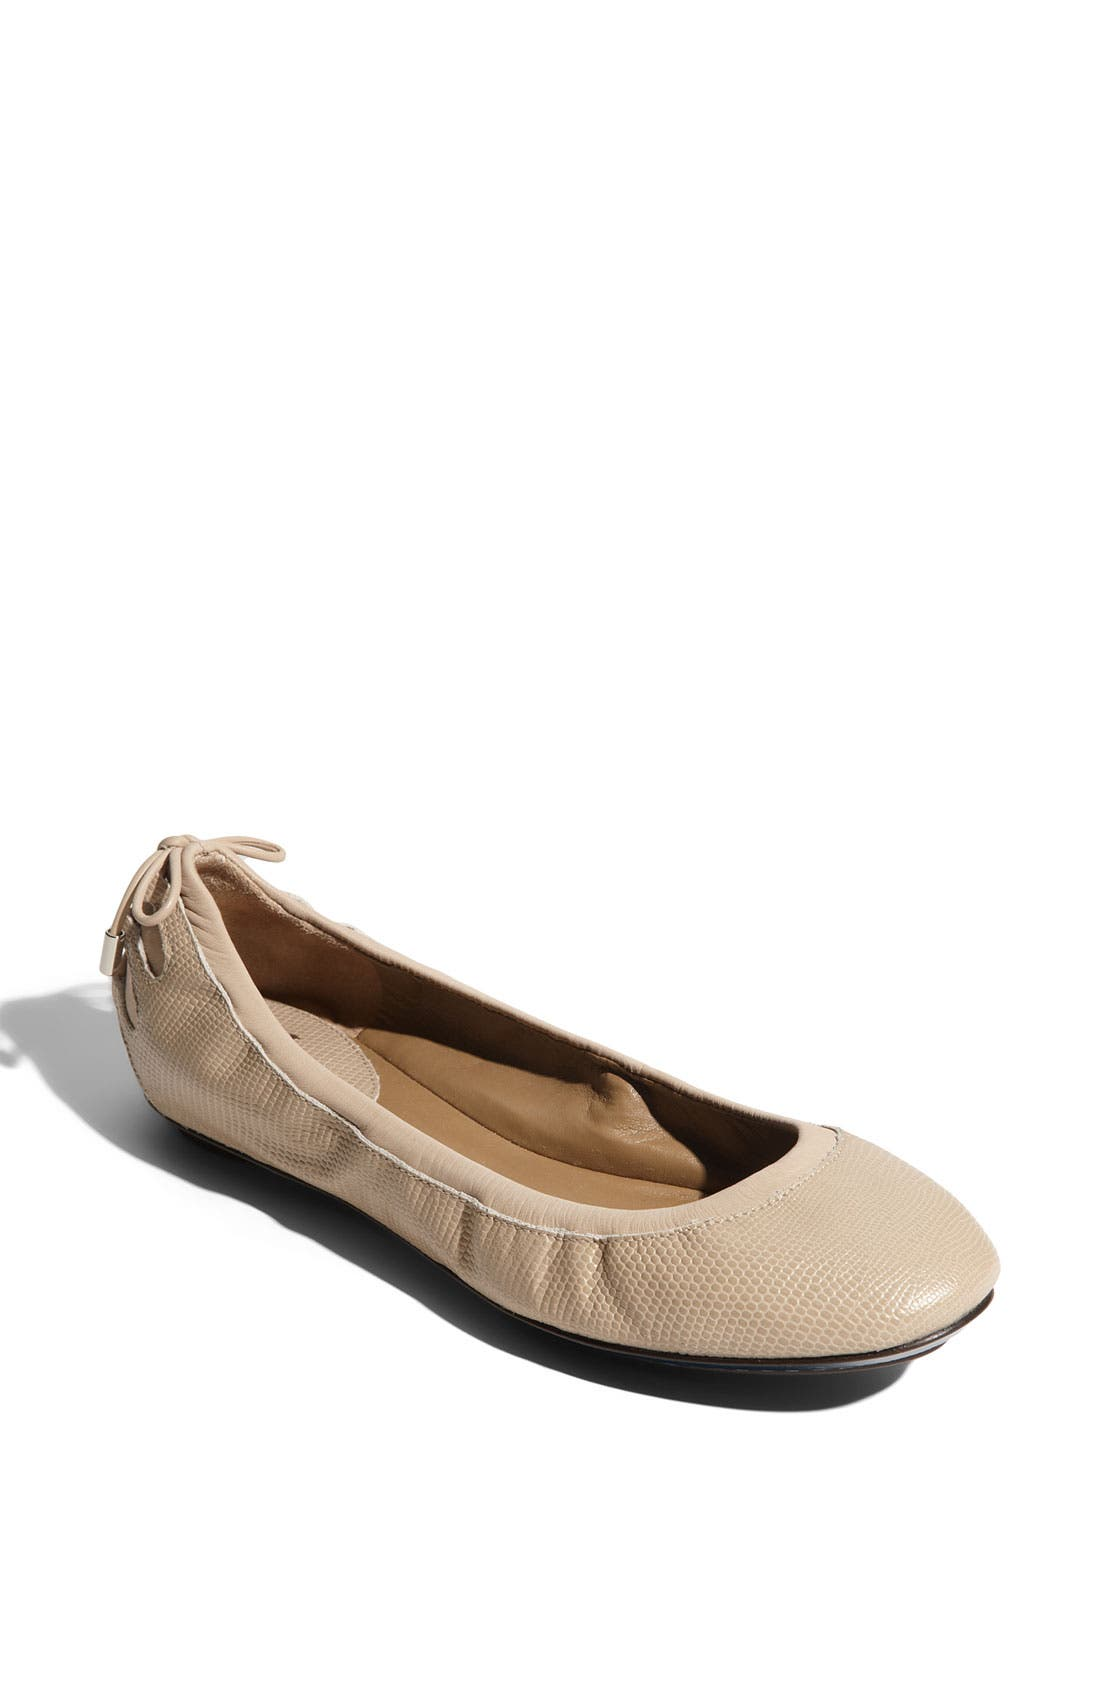 ,                             Maria Sharapova by Cole Haan 'Air Bacara' Flat,                             Main thumbnail 38, color,                             251